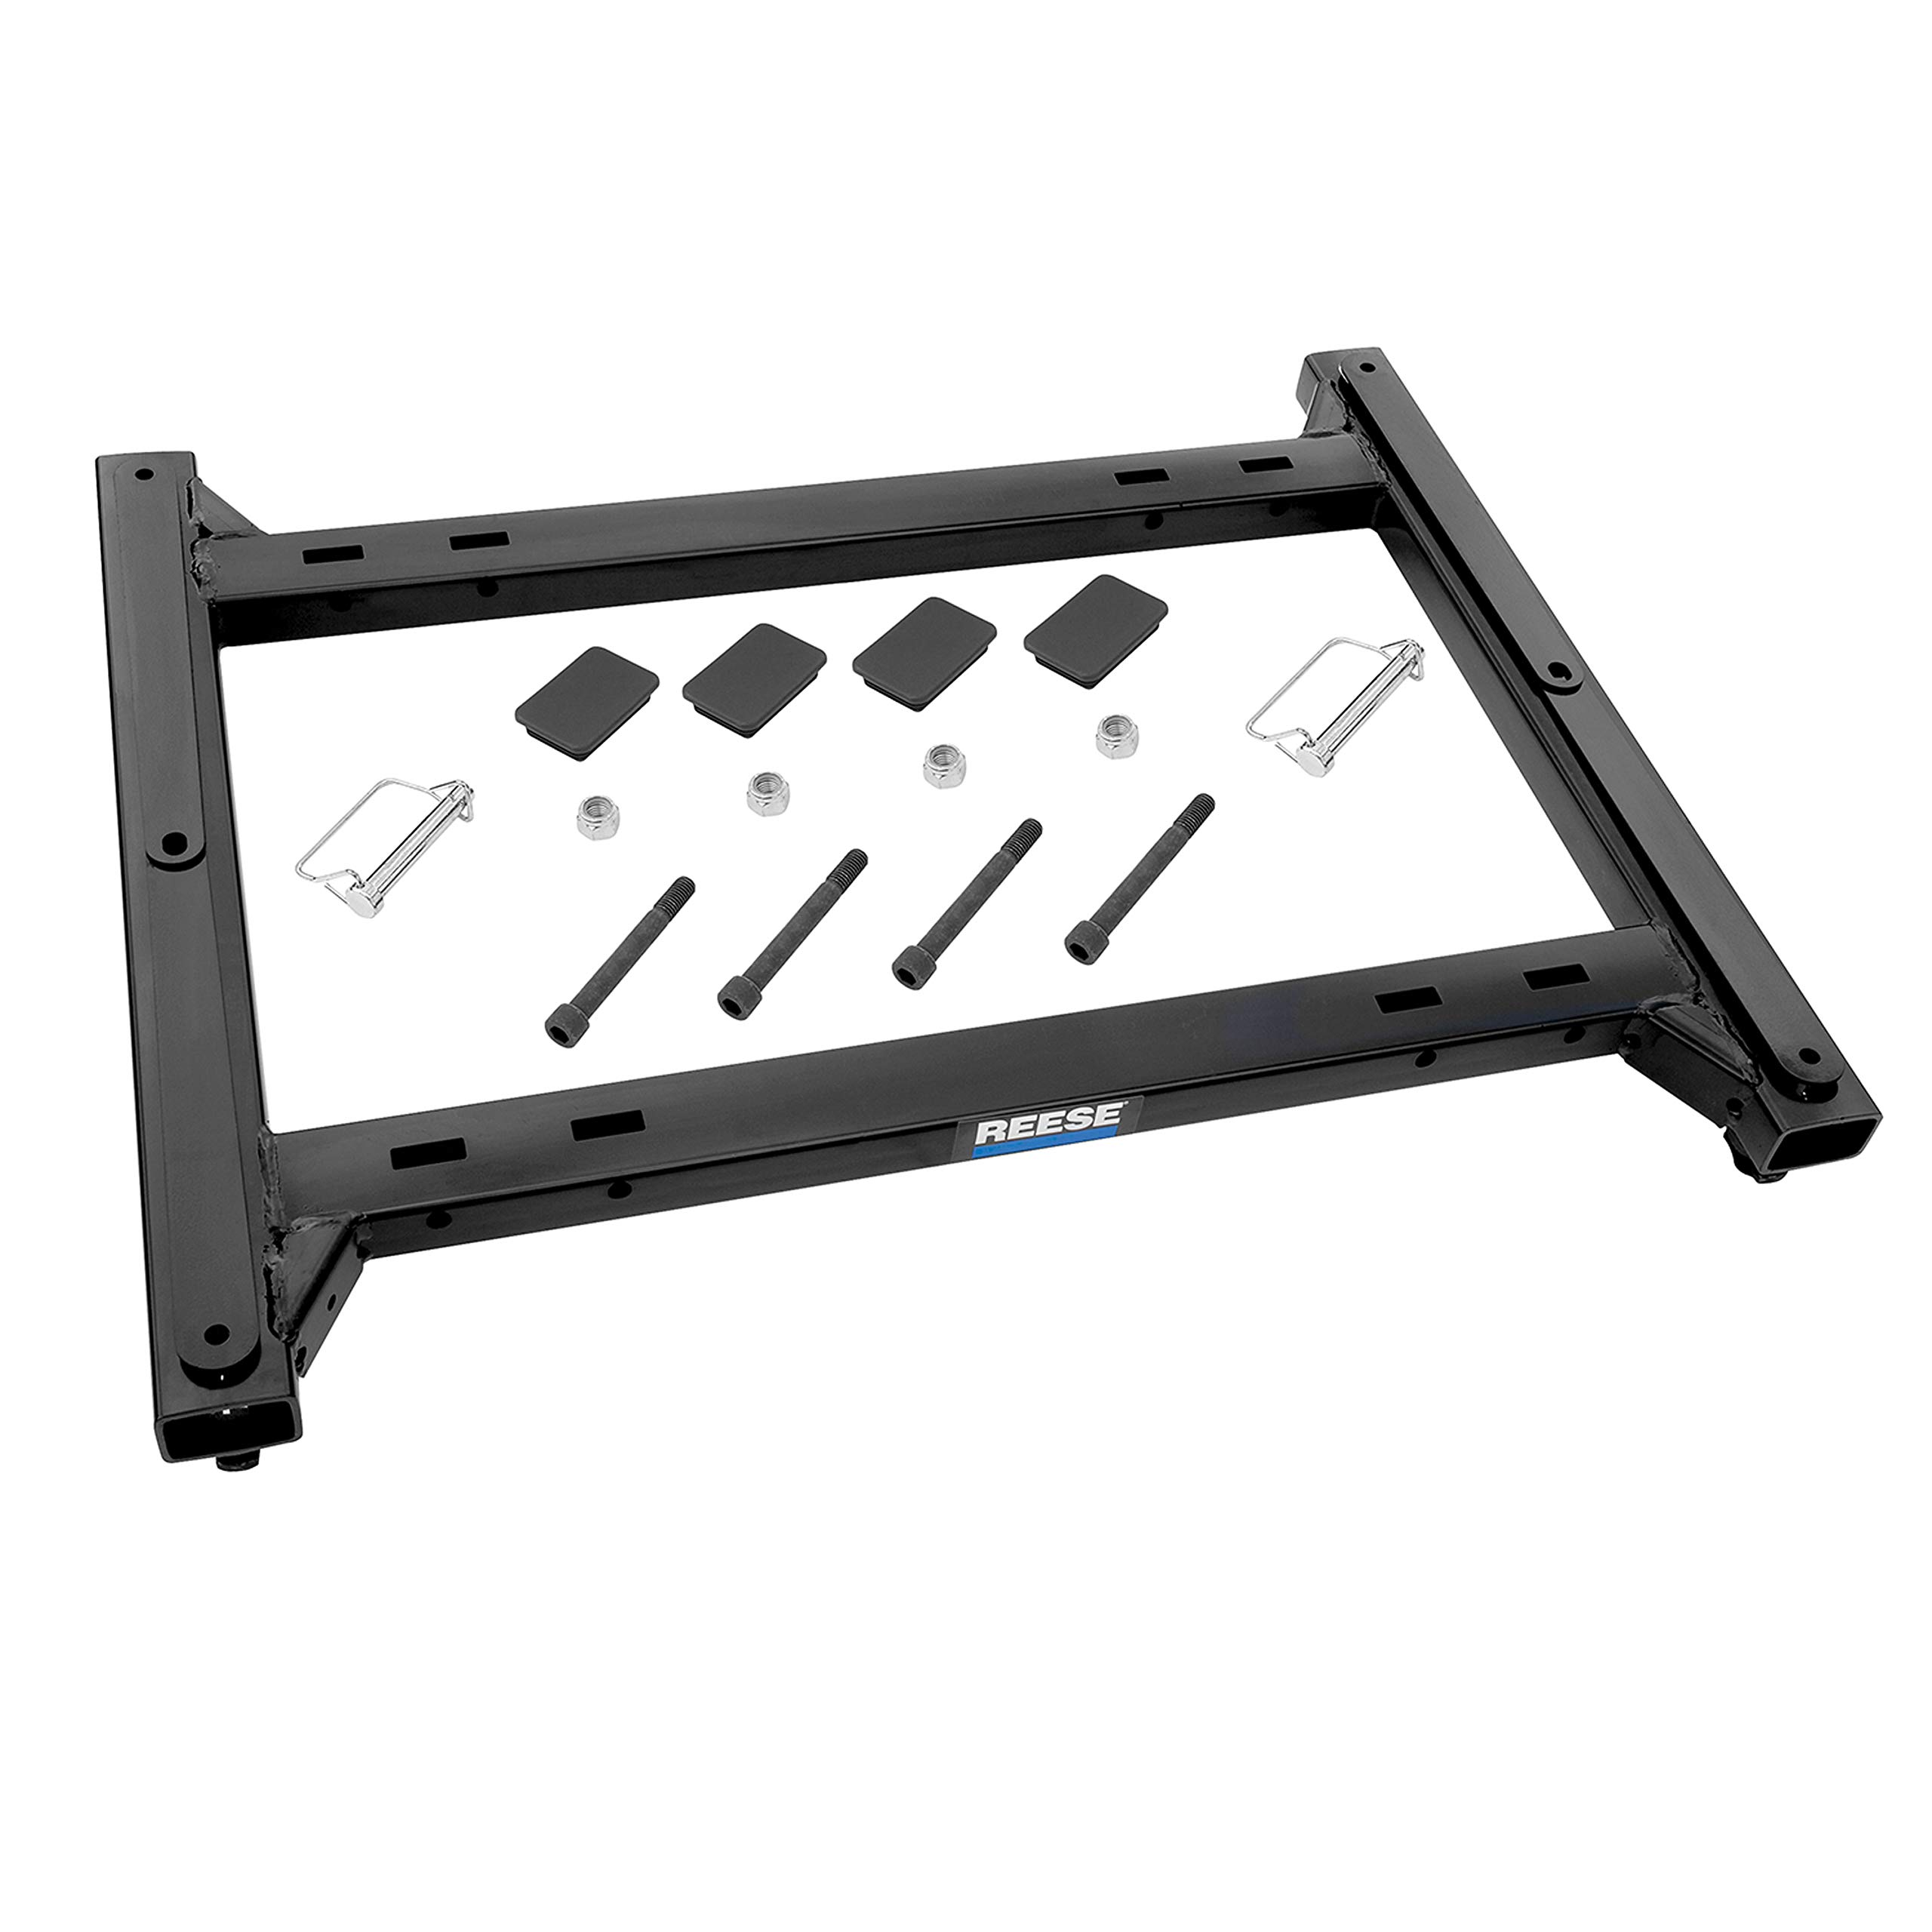 Reese 30154 Fifth Wheel Rail Kit Mounting Adapter For RAM by Reese